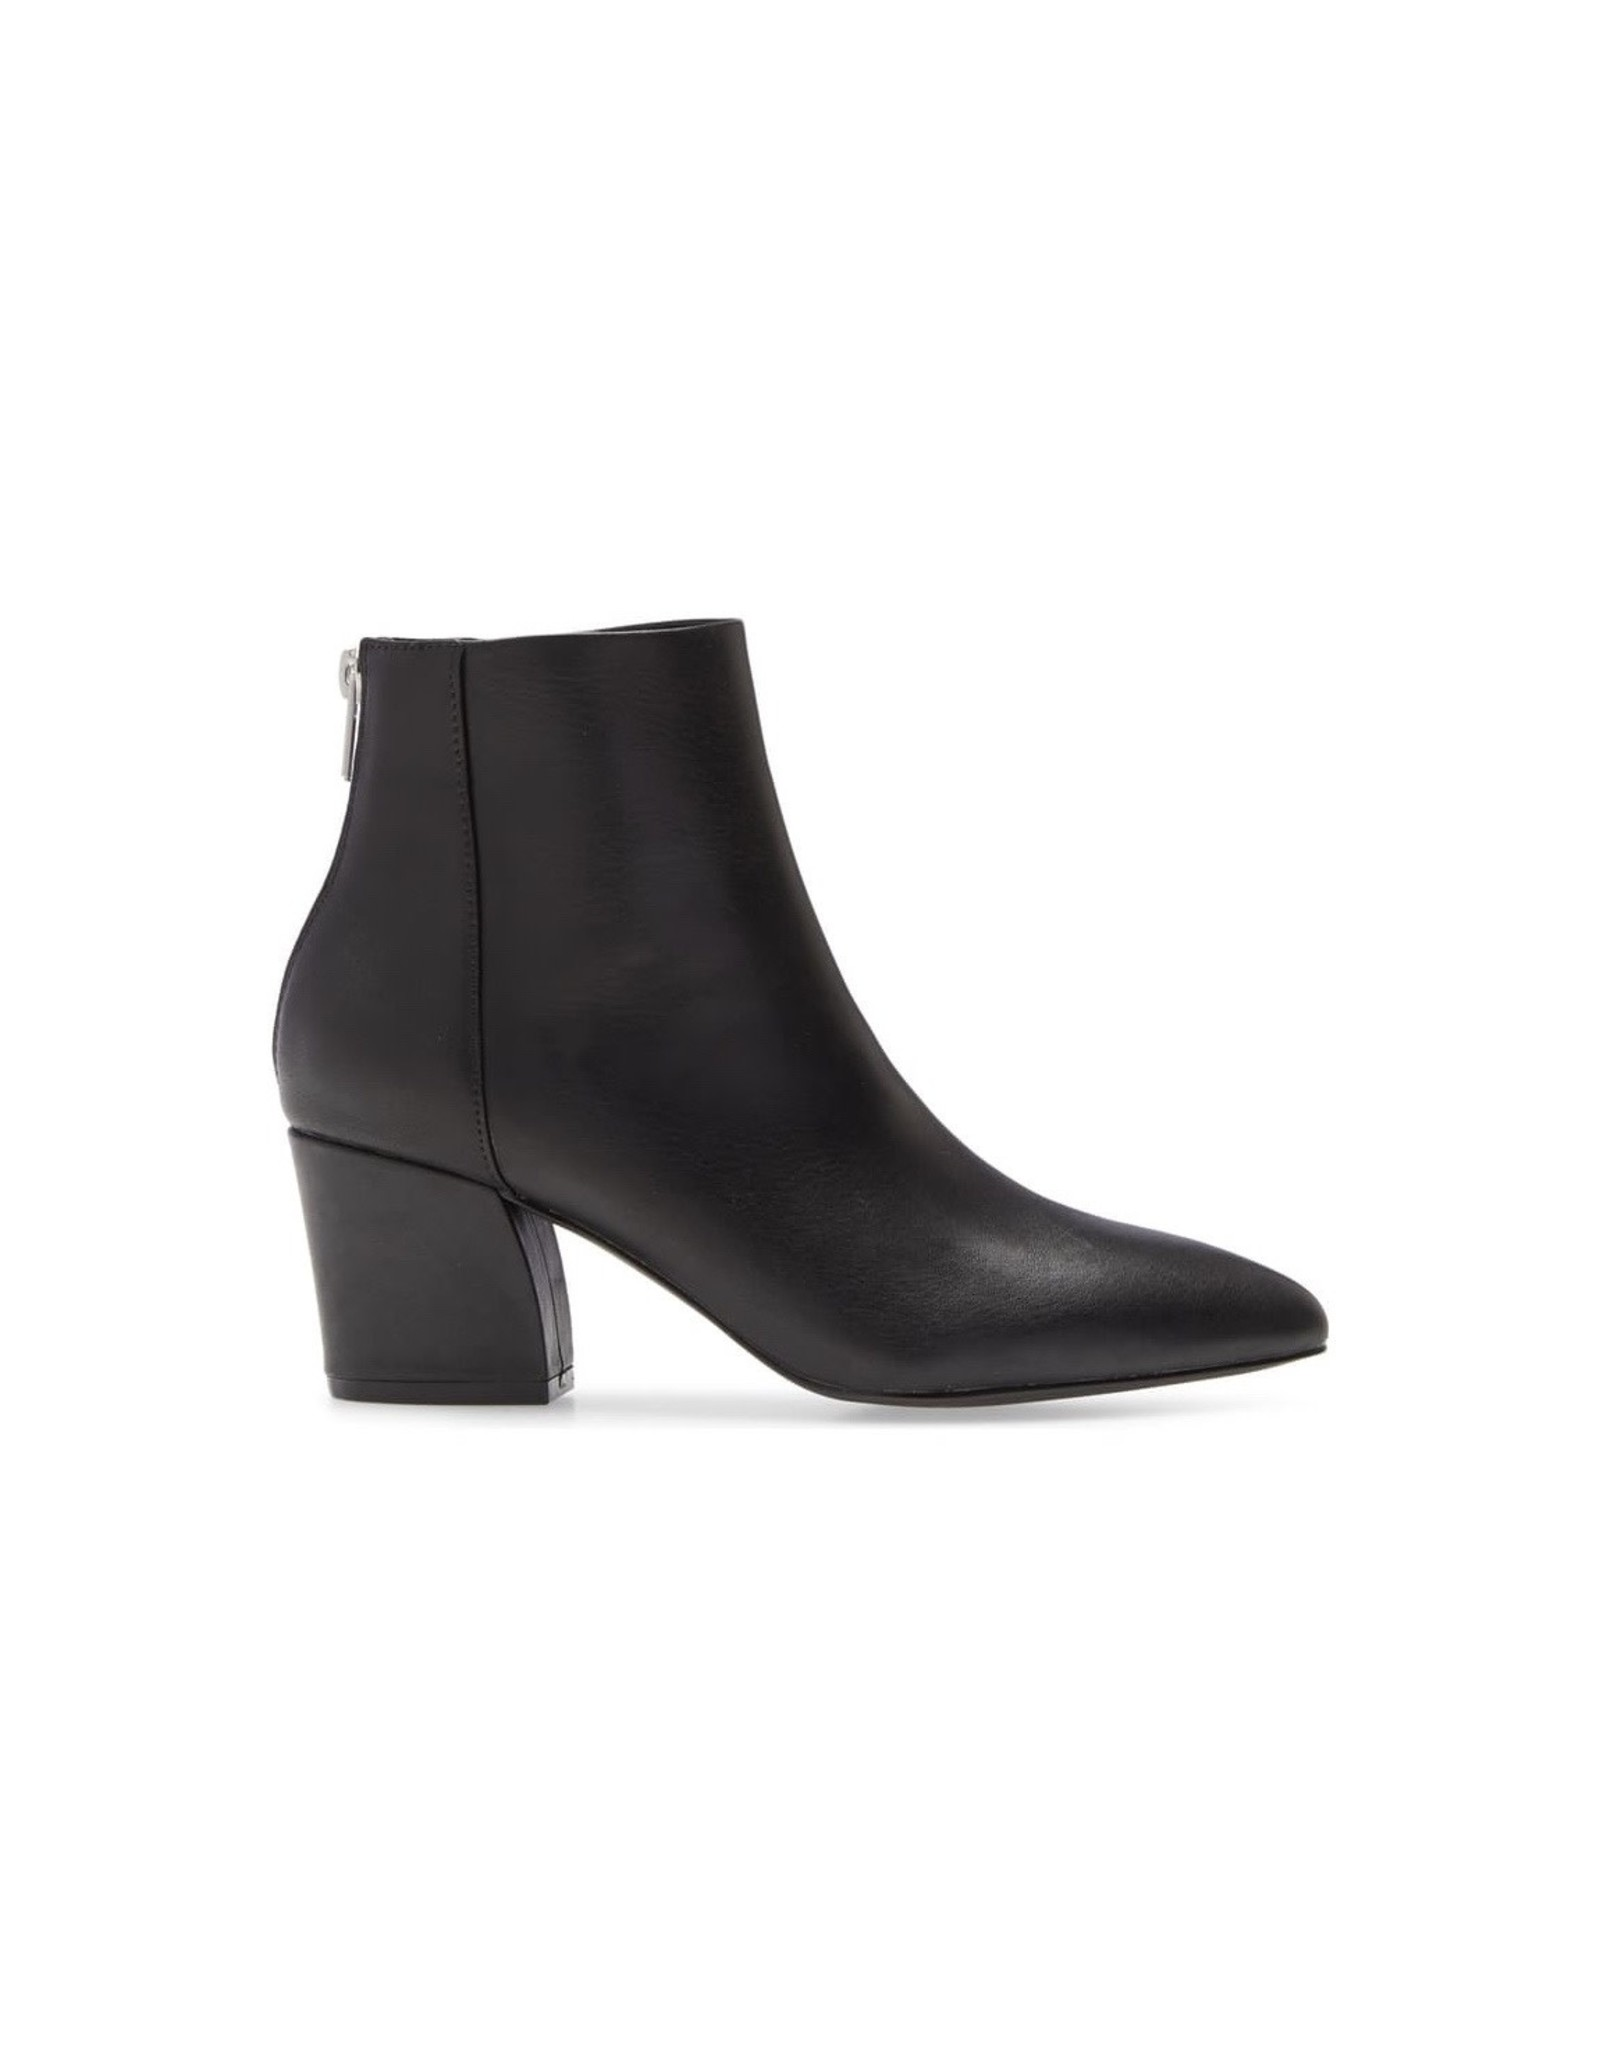 STEVE MADDEN The MISTIN Leather Booties